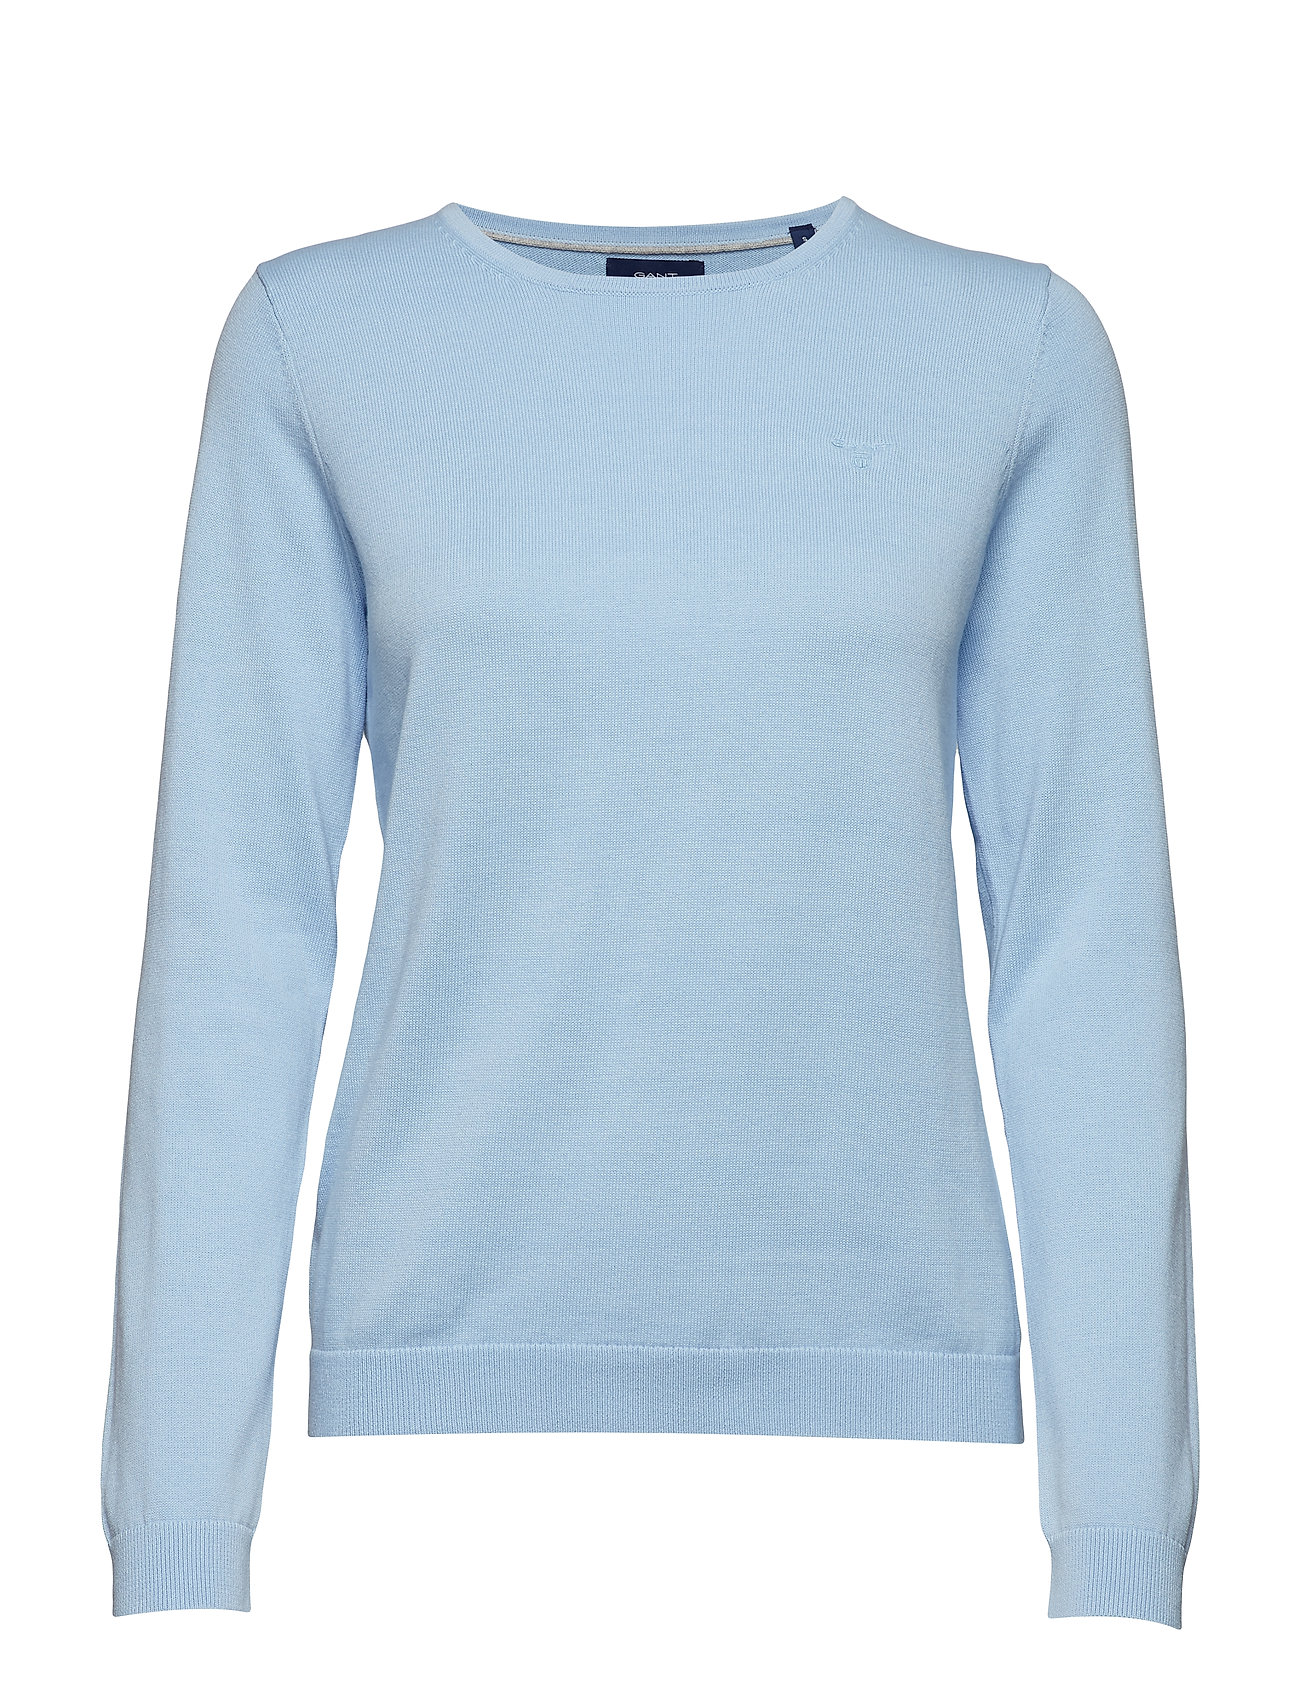 GANT LT WEIGHT COTTON CREW NECK